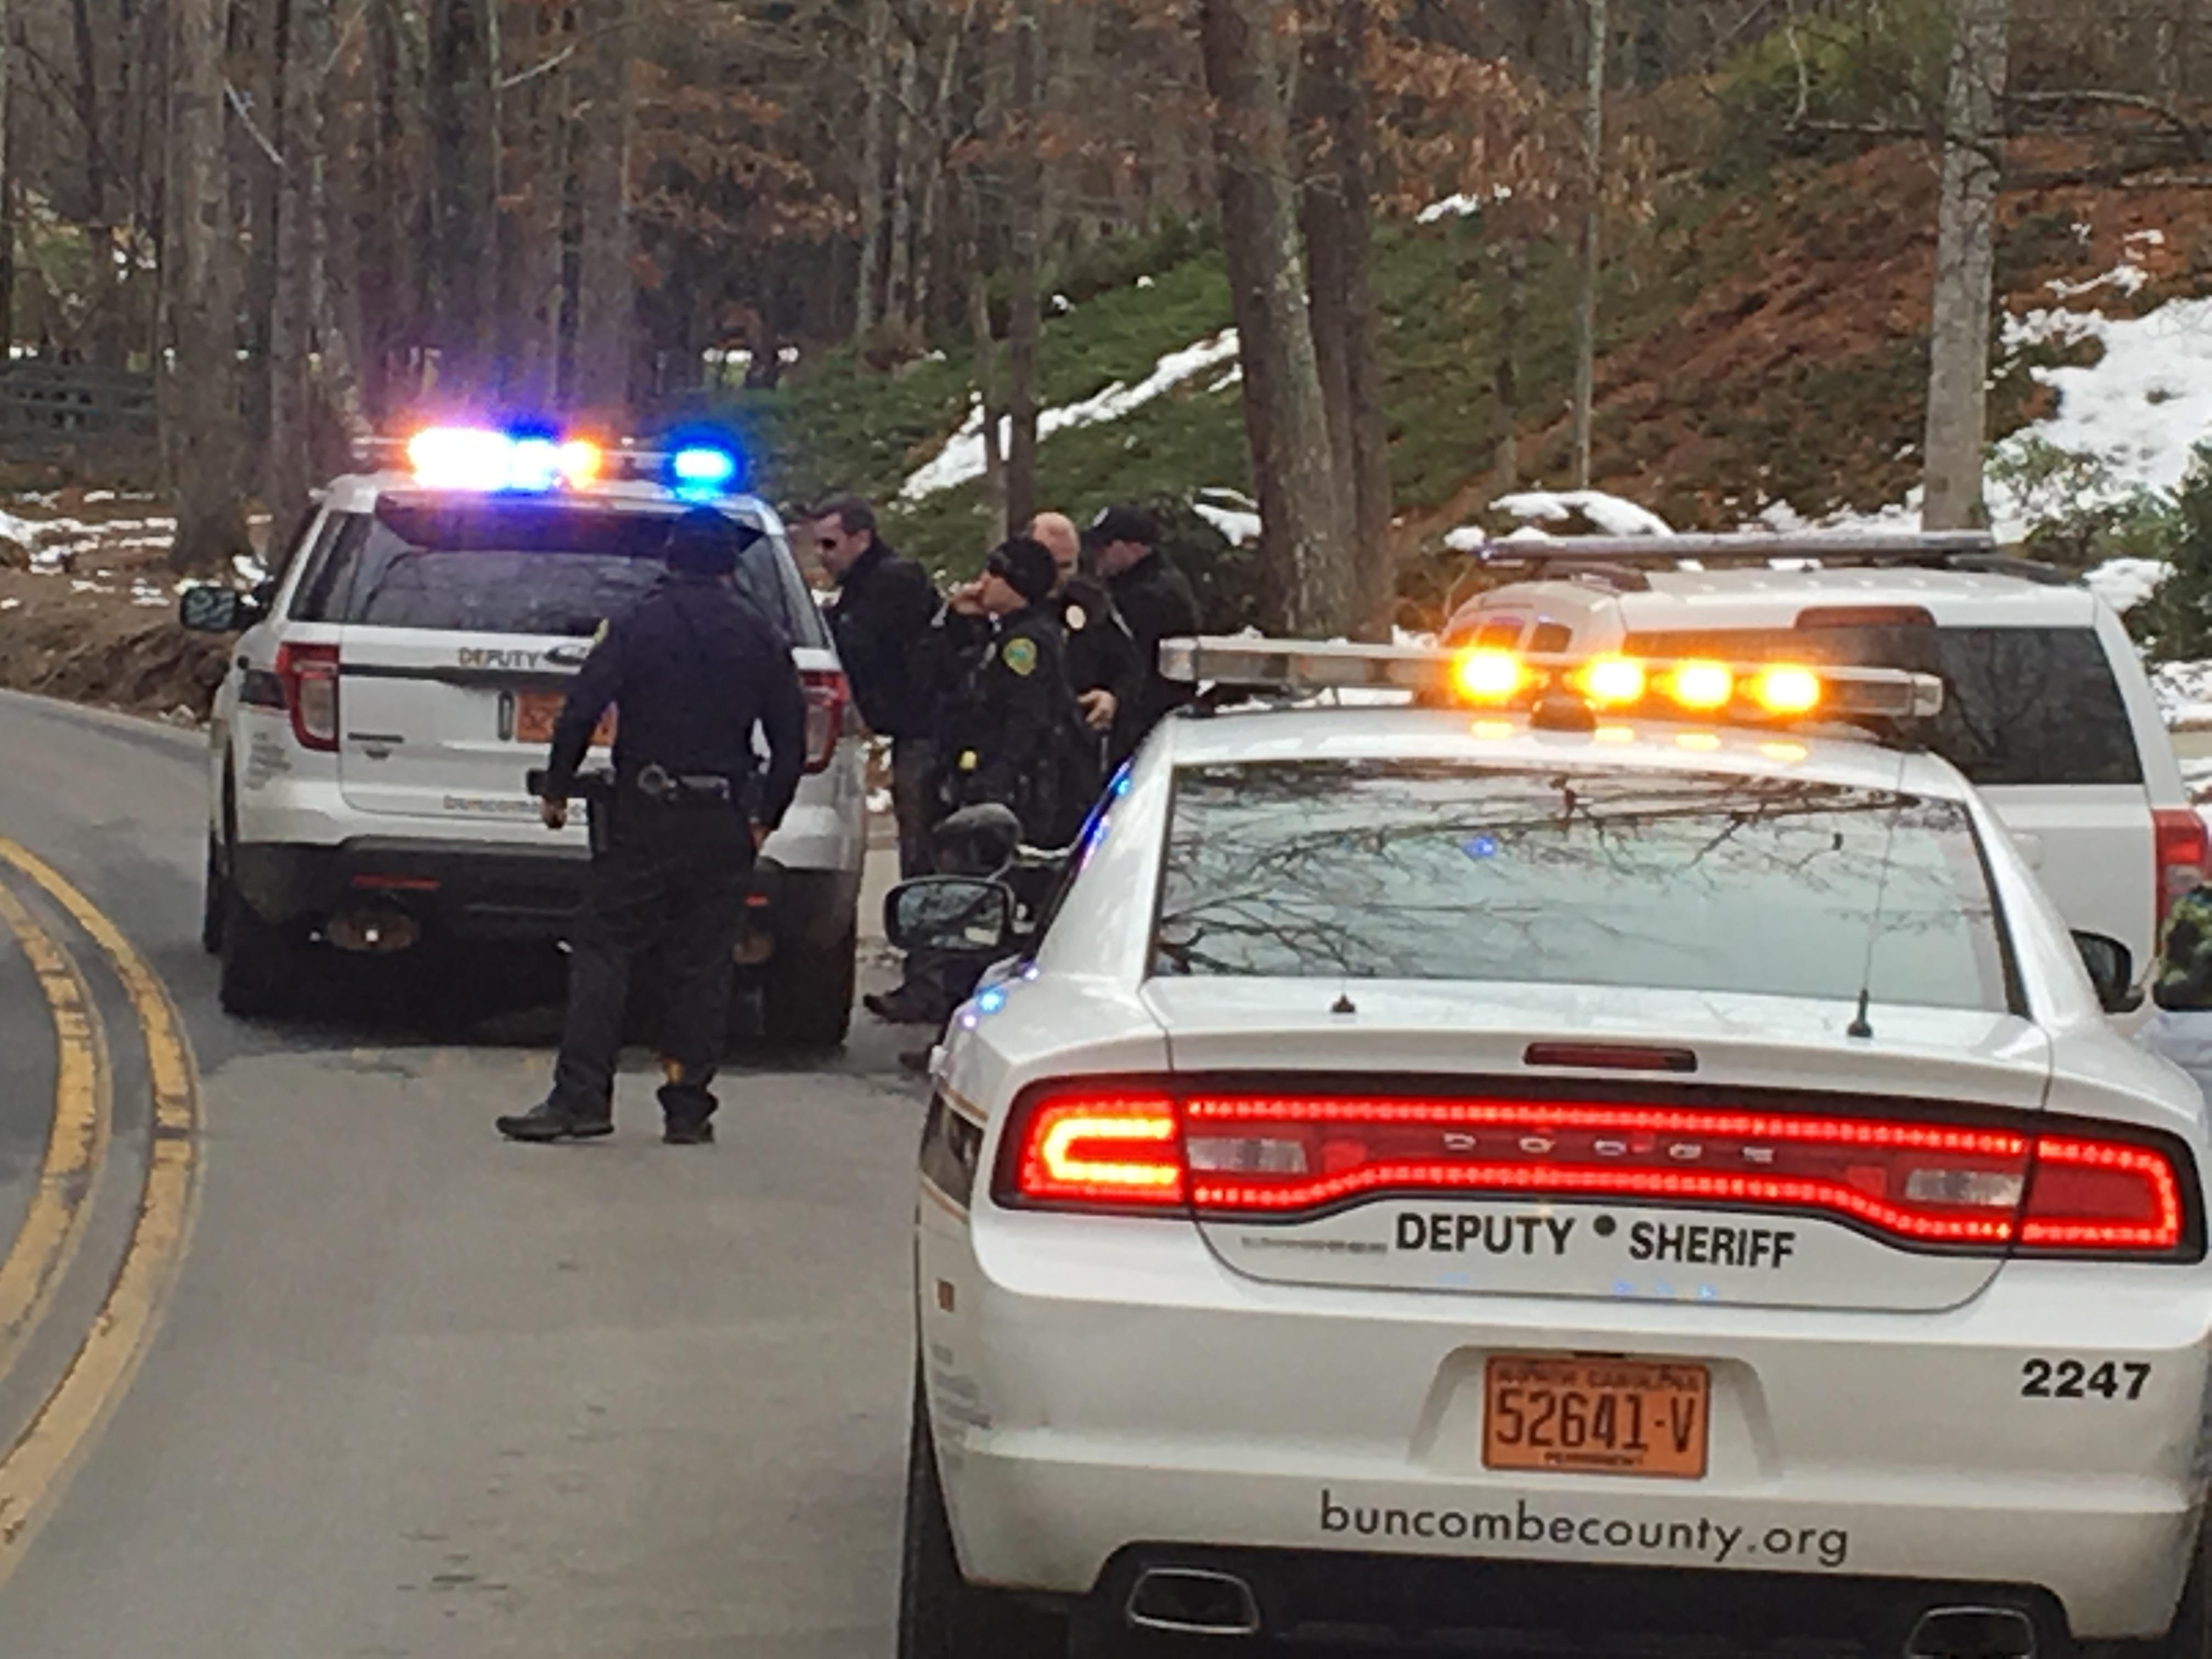 Authorities are investigating a domestic incident that started on N.C. 280 outside Mills River. (Photo credit: WLOS staff)